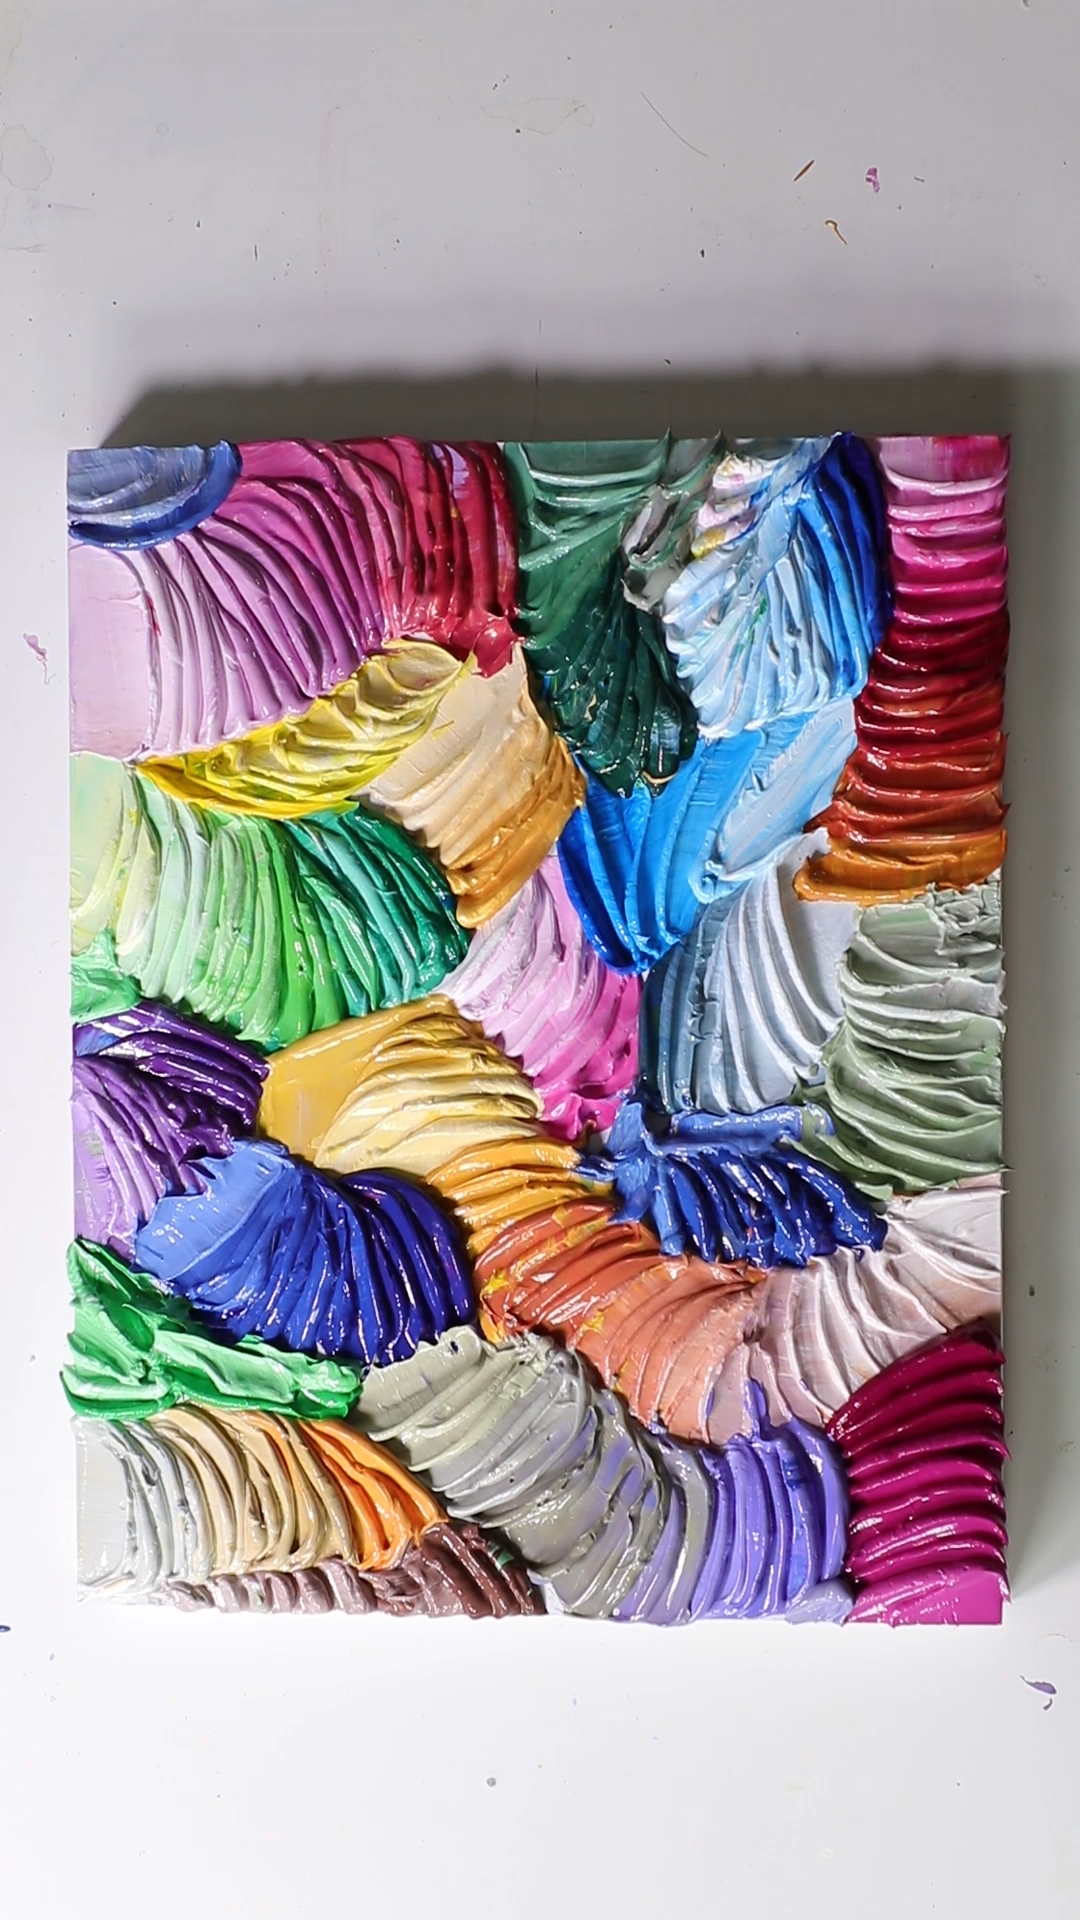 Check out more awesome acrylic paintings by Josie, click here!